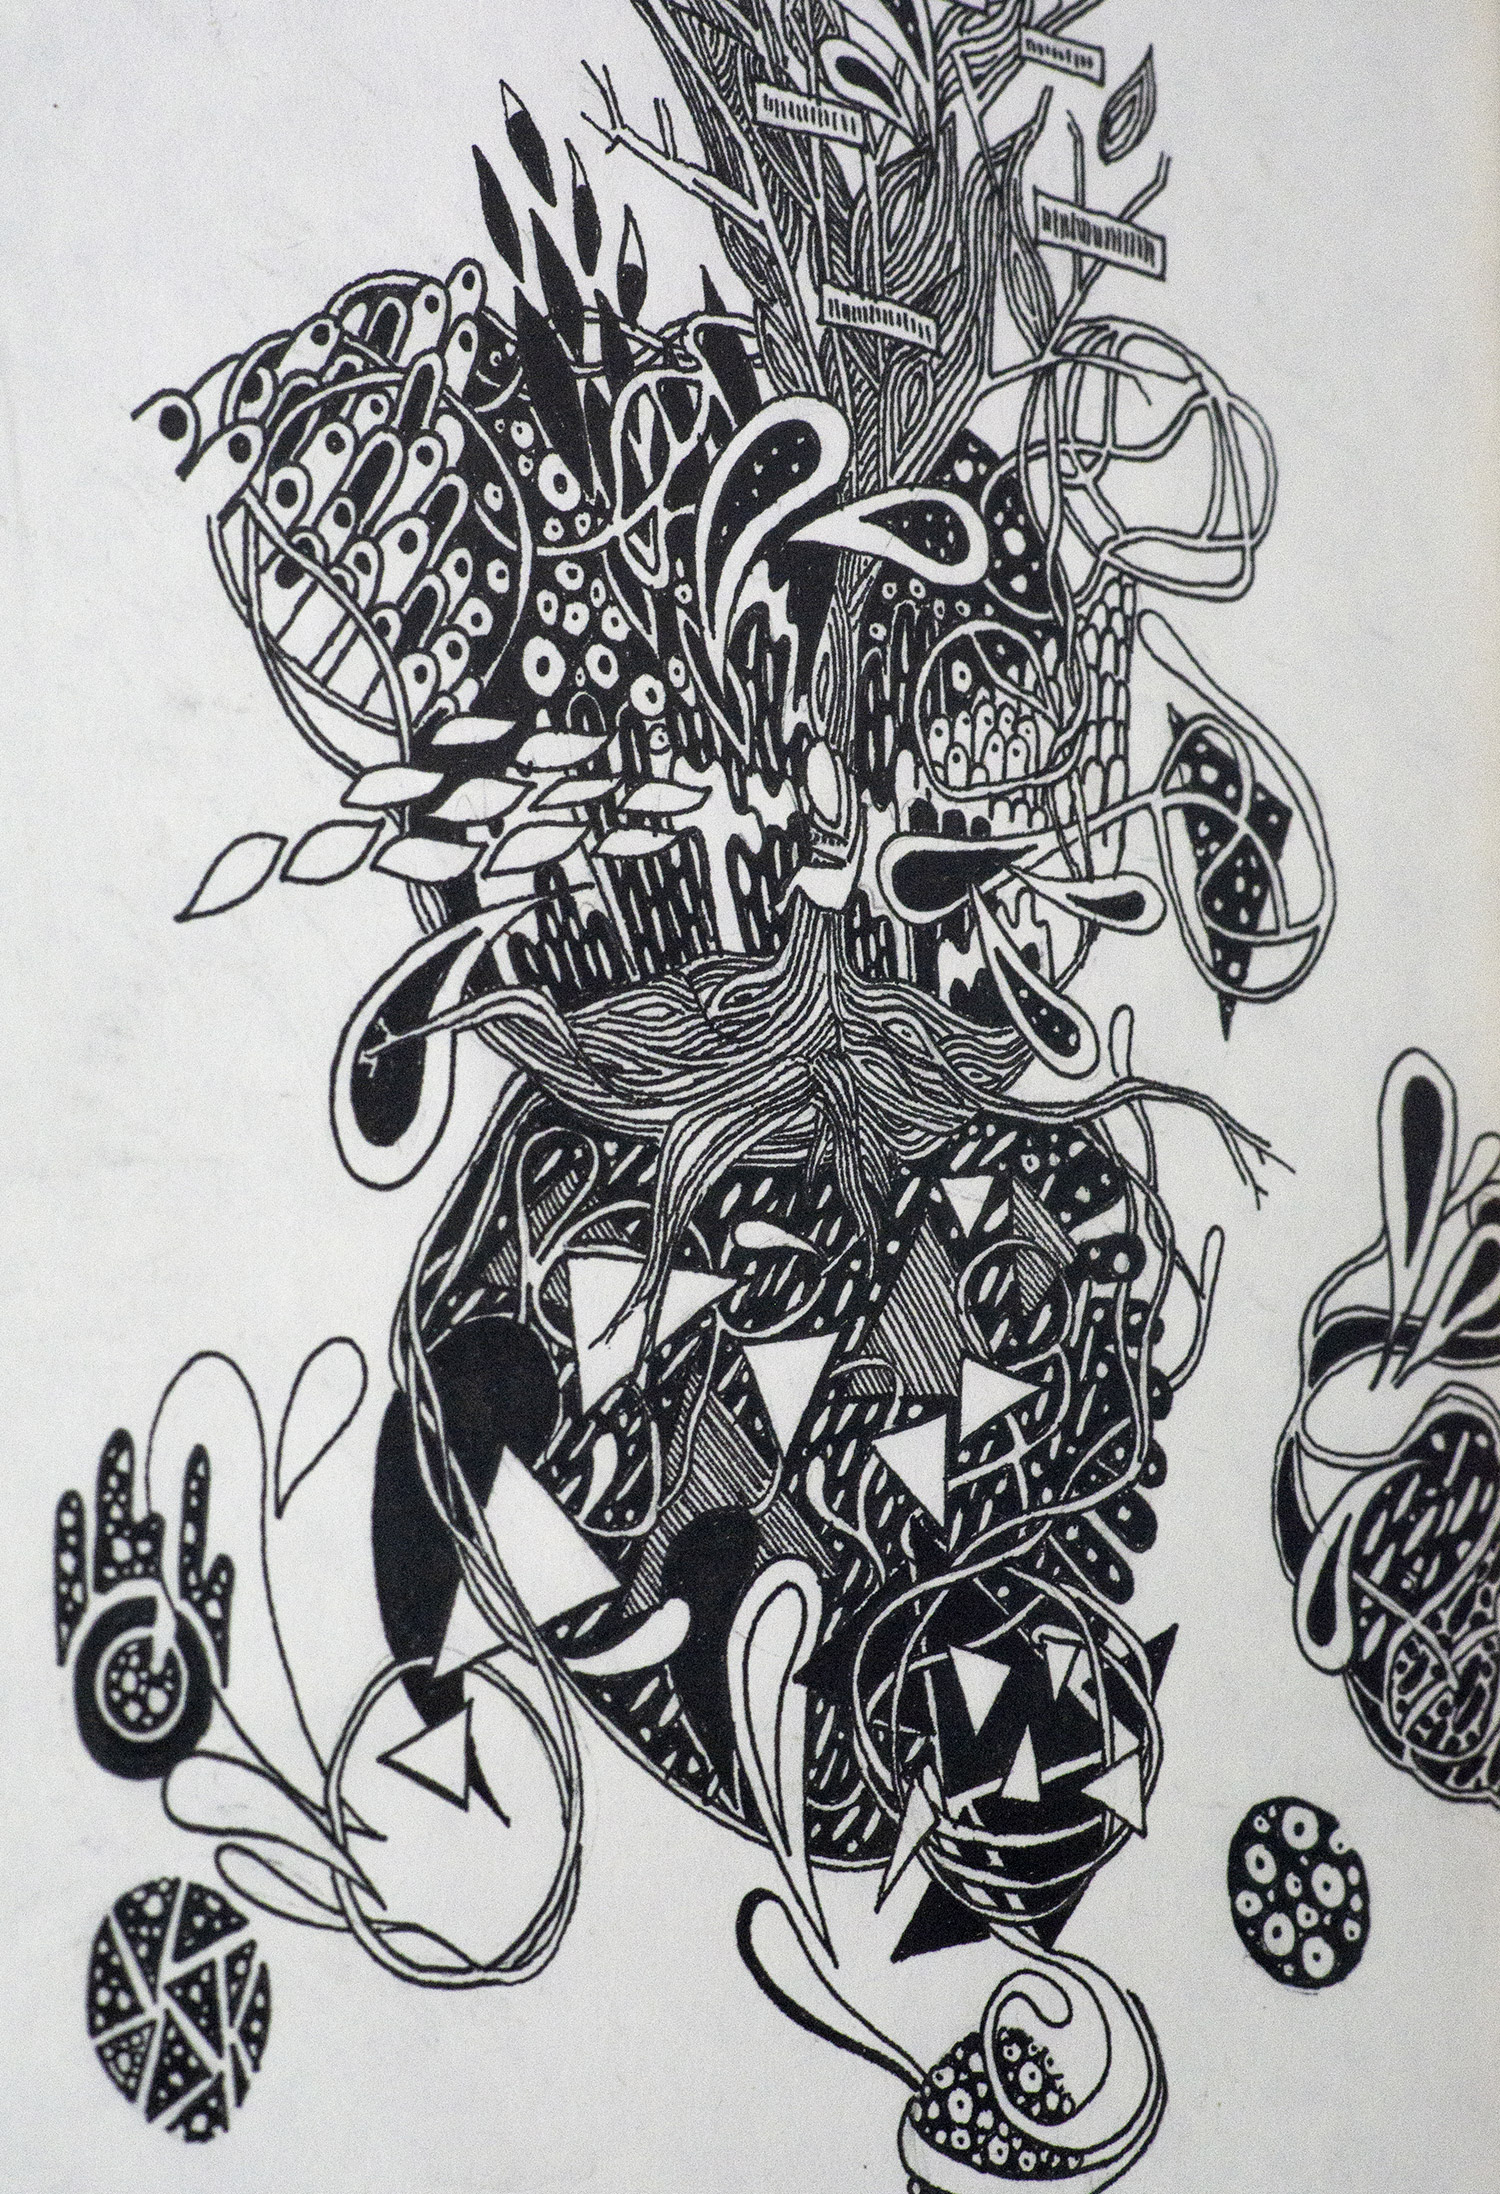 Illustration à l'encre de Chine